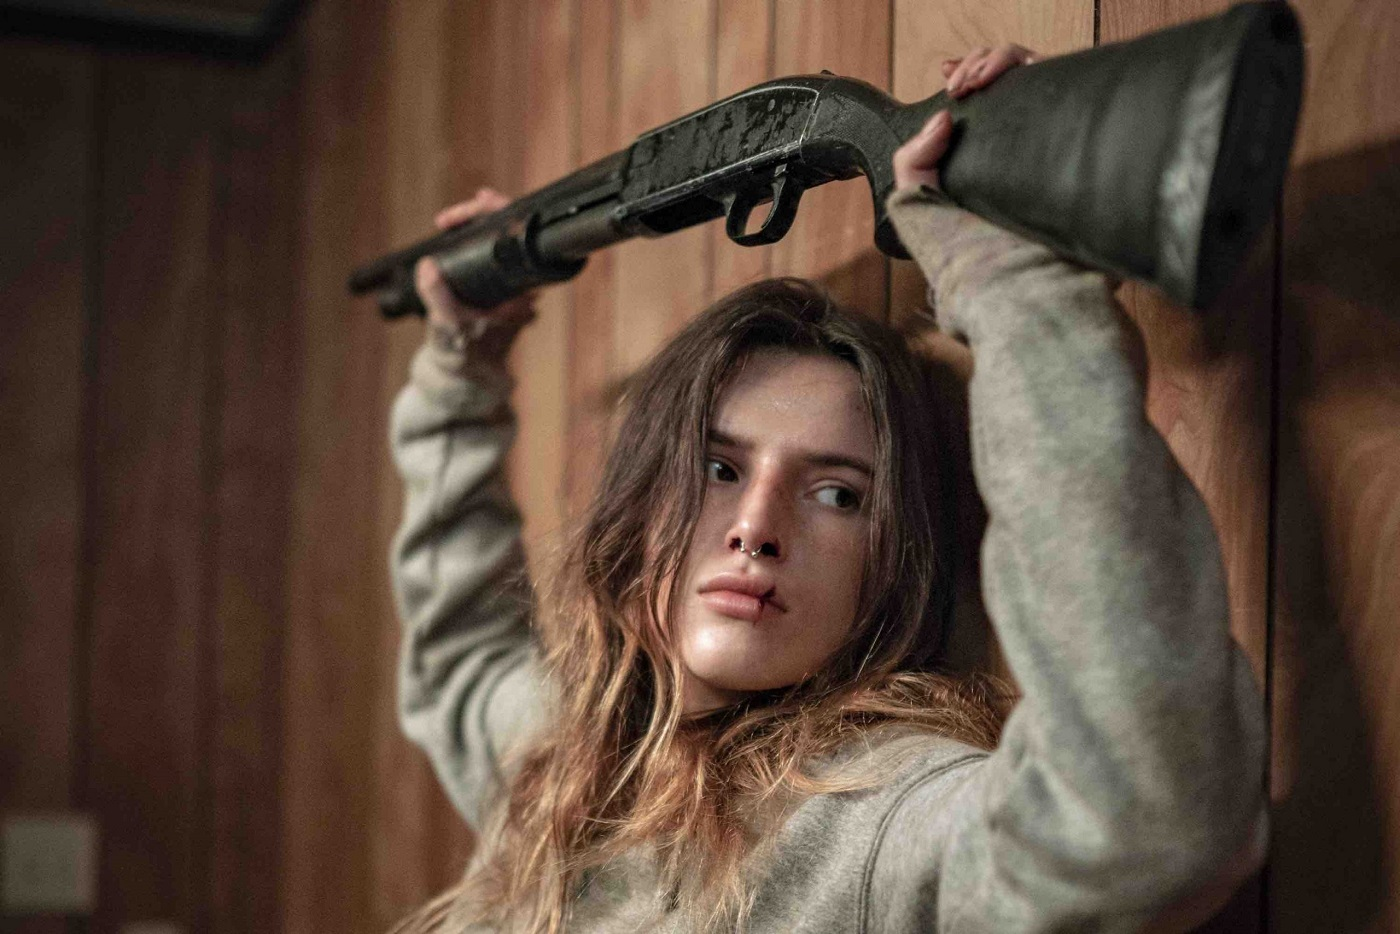 Girl is a lurid, pulpy and shockingly lazy exploitation flick, and it's a flimsy and inept attempt at schlocky '70s grindhouse cinema.